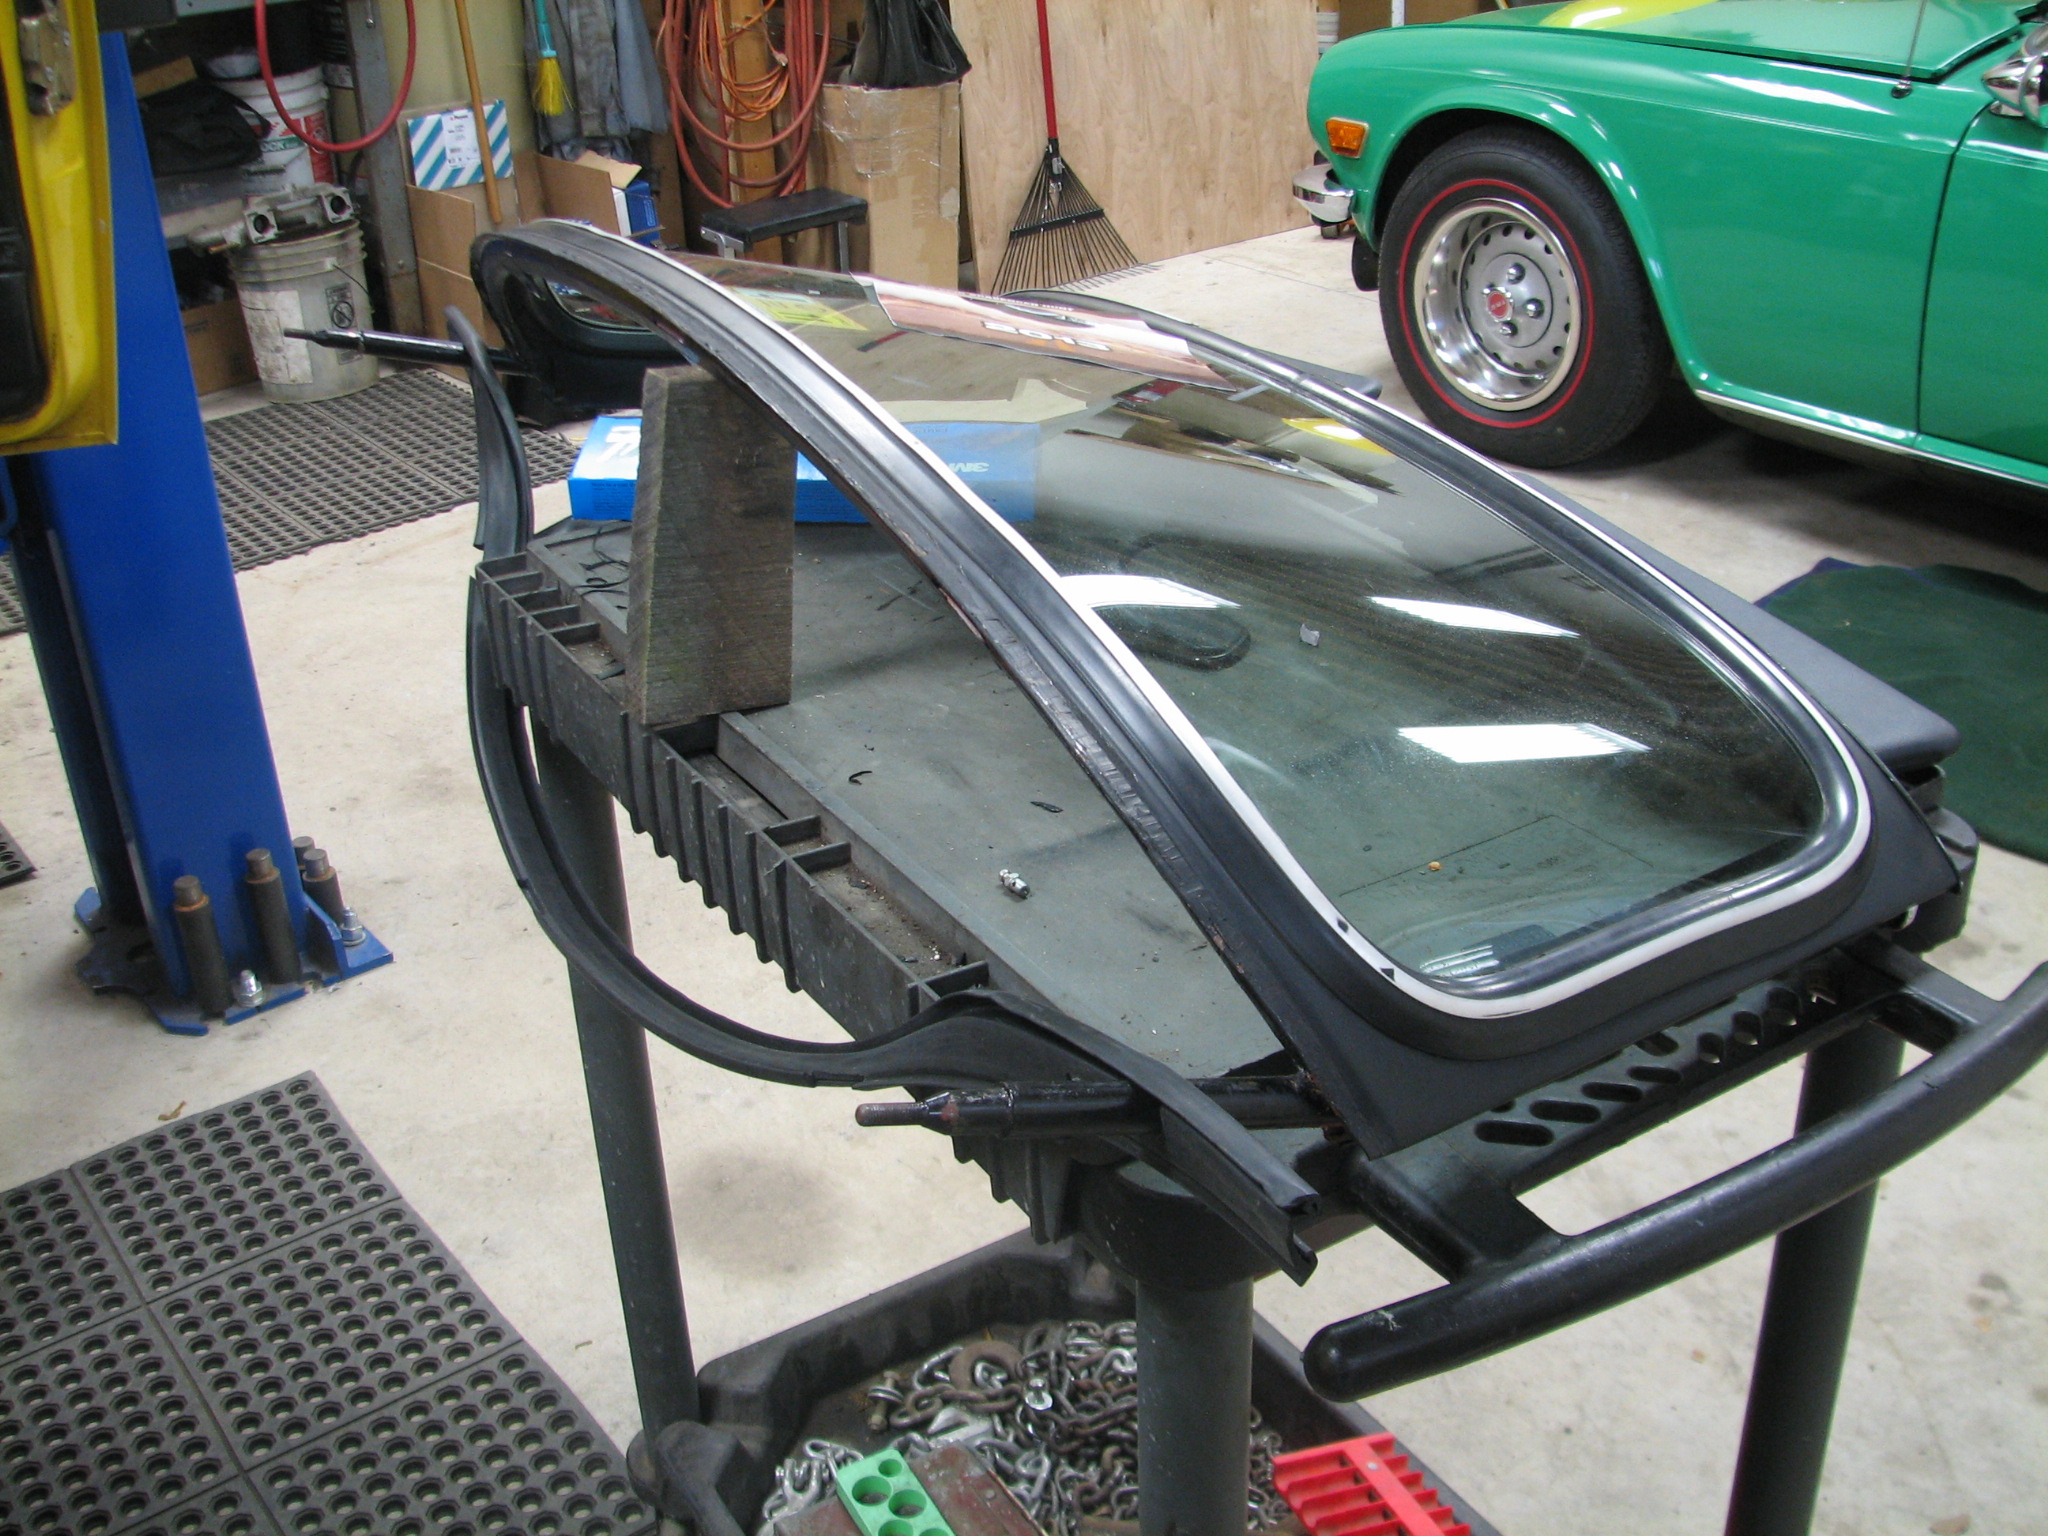 Maxresdefault besides Yb additionally Maxresdefault furthermore Maxresdefault as well Img. on windshield wiper motor replacement